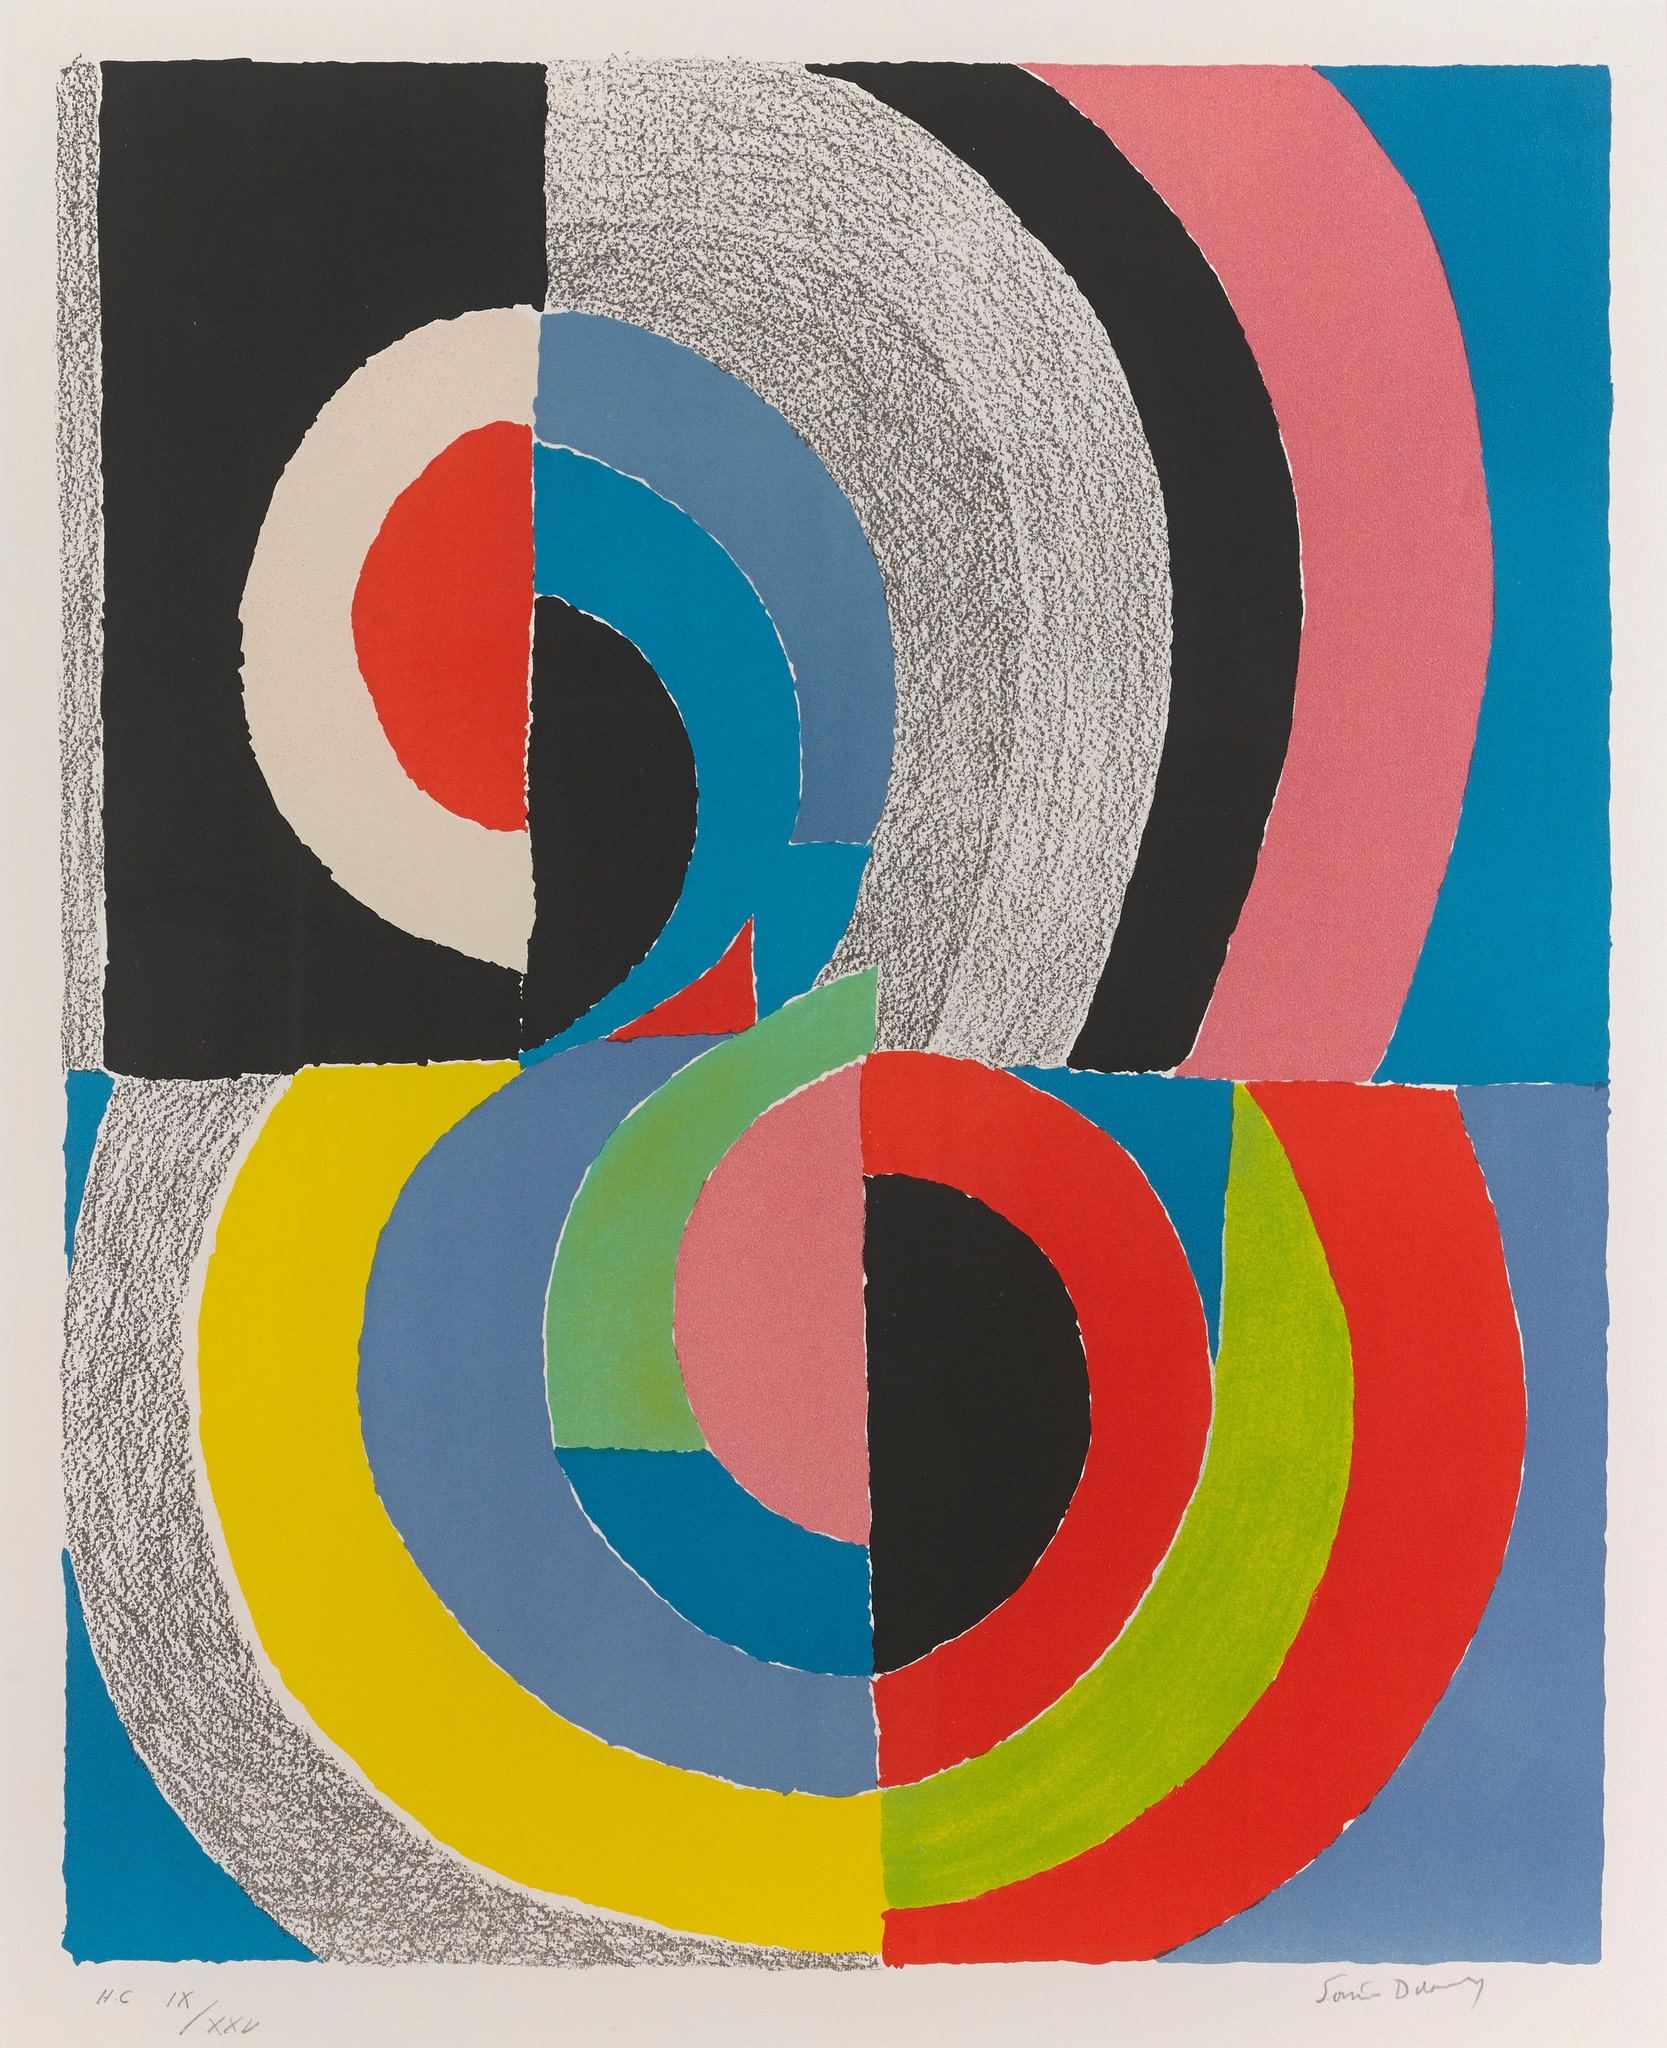 "<span class=""link fancybox-details-link""><a href=""/artists/39-sonia-delaunay/works/categories/146/"">View Detail Page</a></span><div class=""artist""><strong>Sonia Delaunay</strong></div> 1885 - 1979 <div class=""title""><em>Plougastel</em>, 1970</div> <div class=""signed_and_dated"">signed in pencil, numbered H.C IX/XXV, a hors commerce impression, aside from the edition of 75, published by Galerie de Varenne, Paris, with wide margins, in very good condition.</div> <div class=""medium"">Lithograph in colours</div> <div class=""dimensions"">Sheet:<br />29 7/8 x 22 1/8 in<br />76 x 56 cm</div><div class=""copyright_line"">Copyright The Artist</div>"